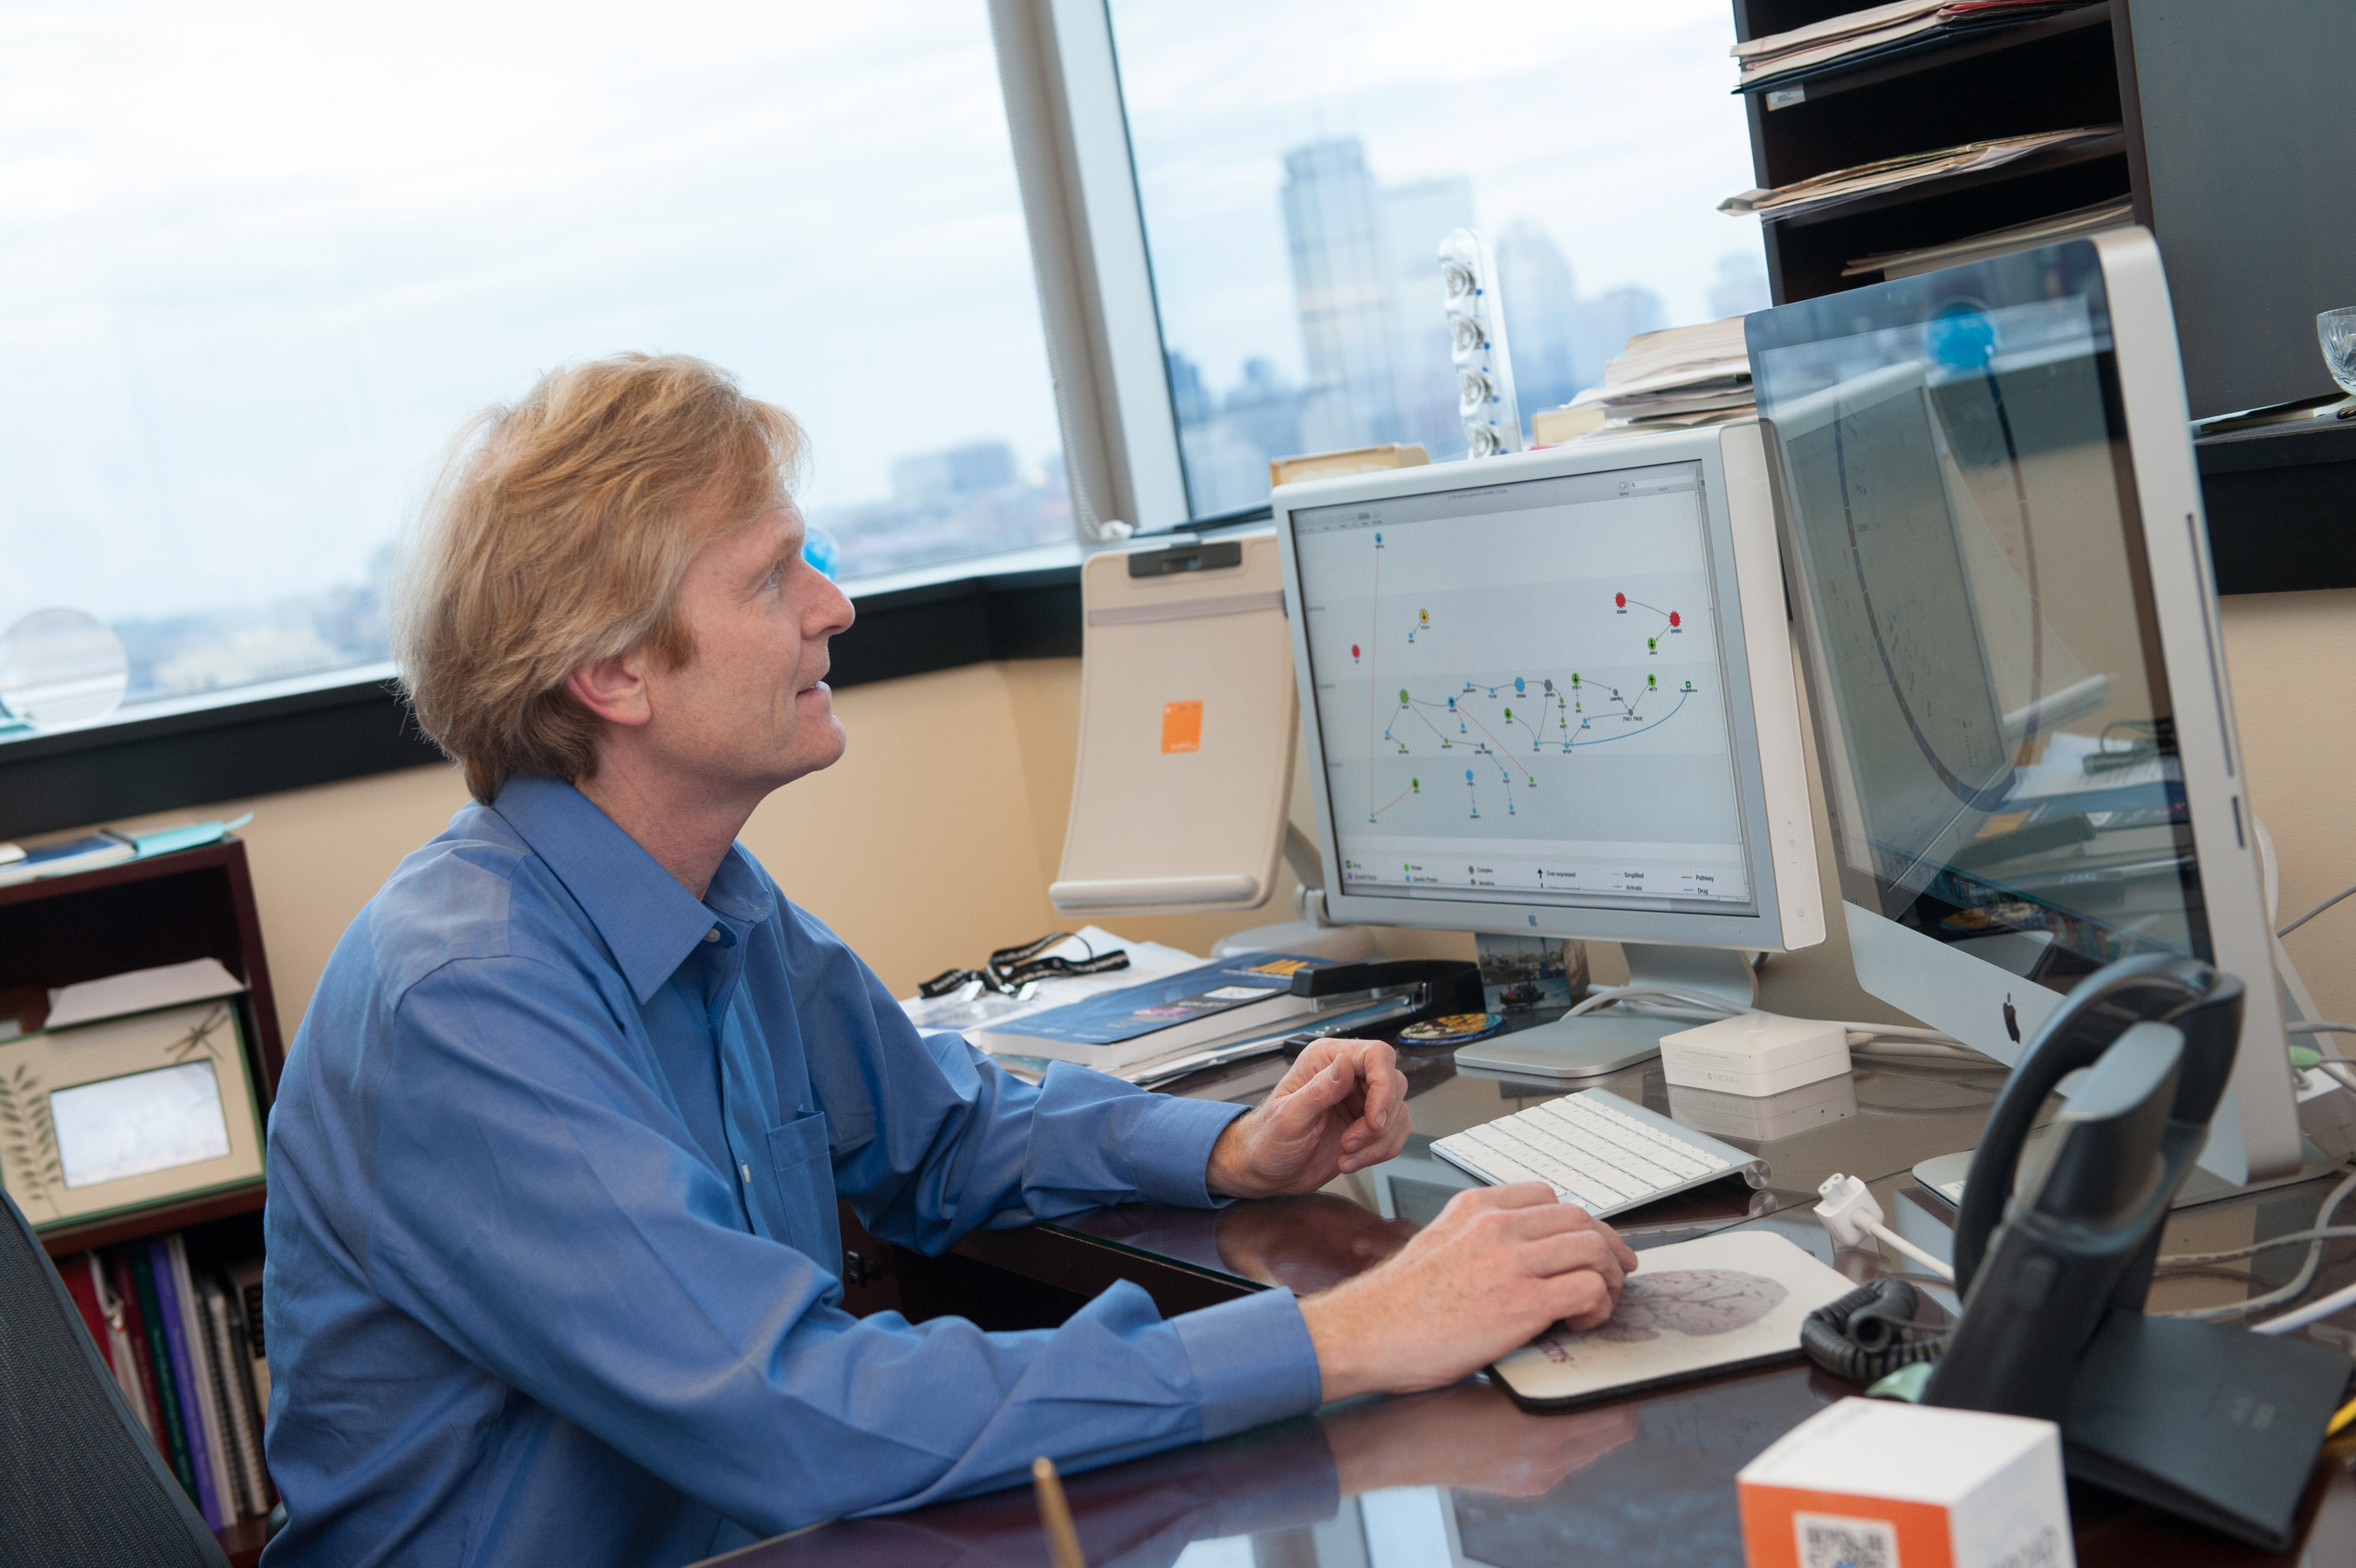 Dr. Christopher Walsh, Chief of Genetics at Boston Children's Hospital explores the IBM Watson for Genomics Dashboard.